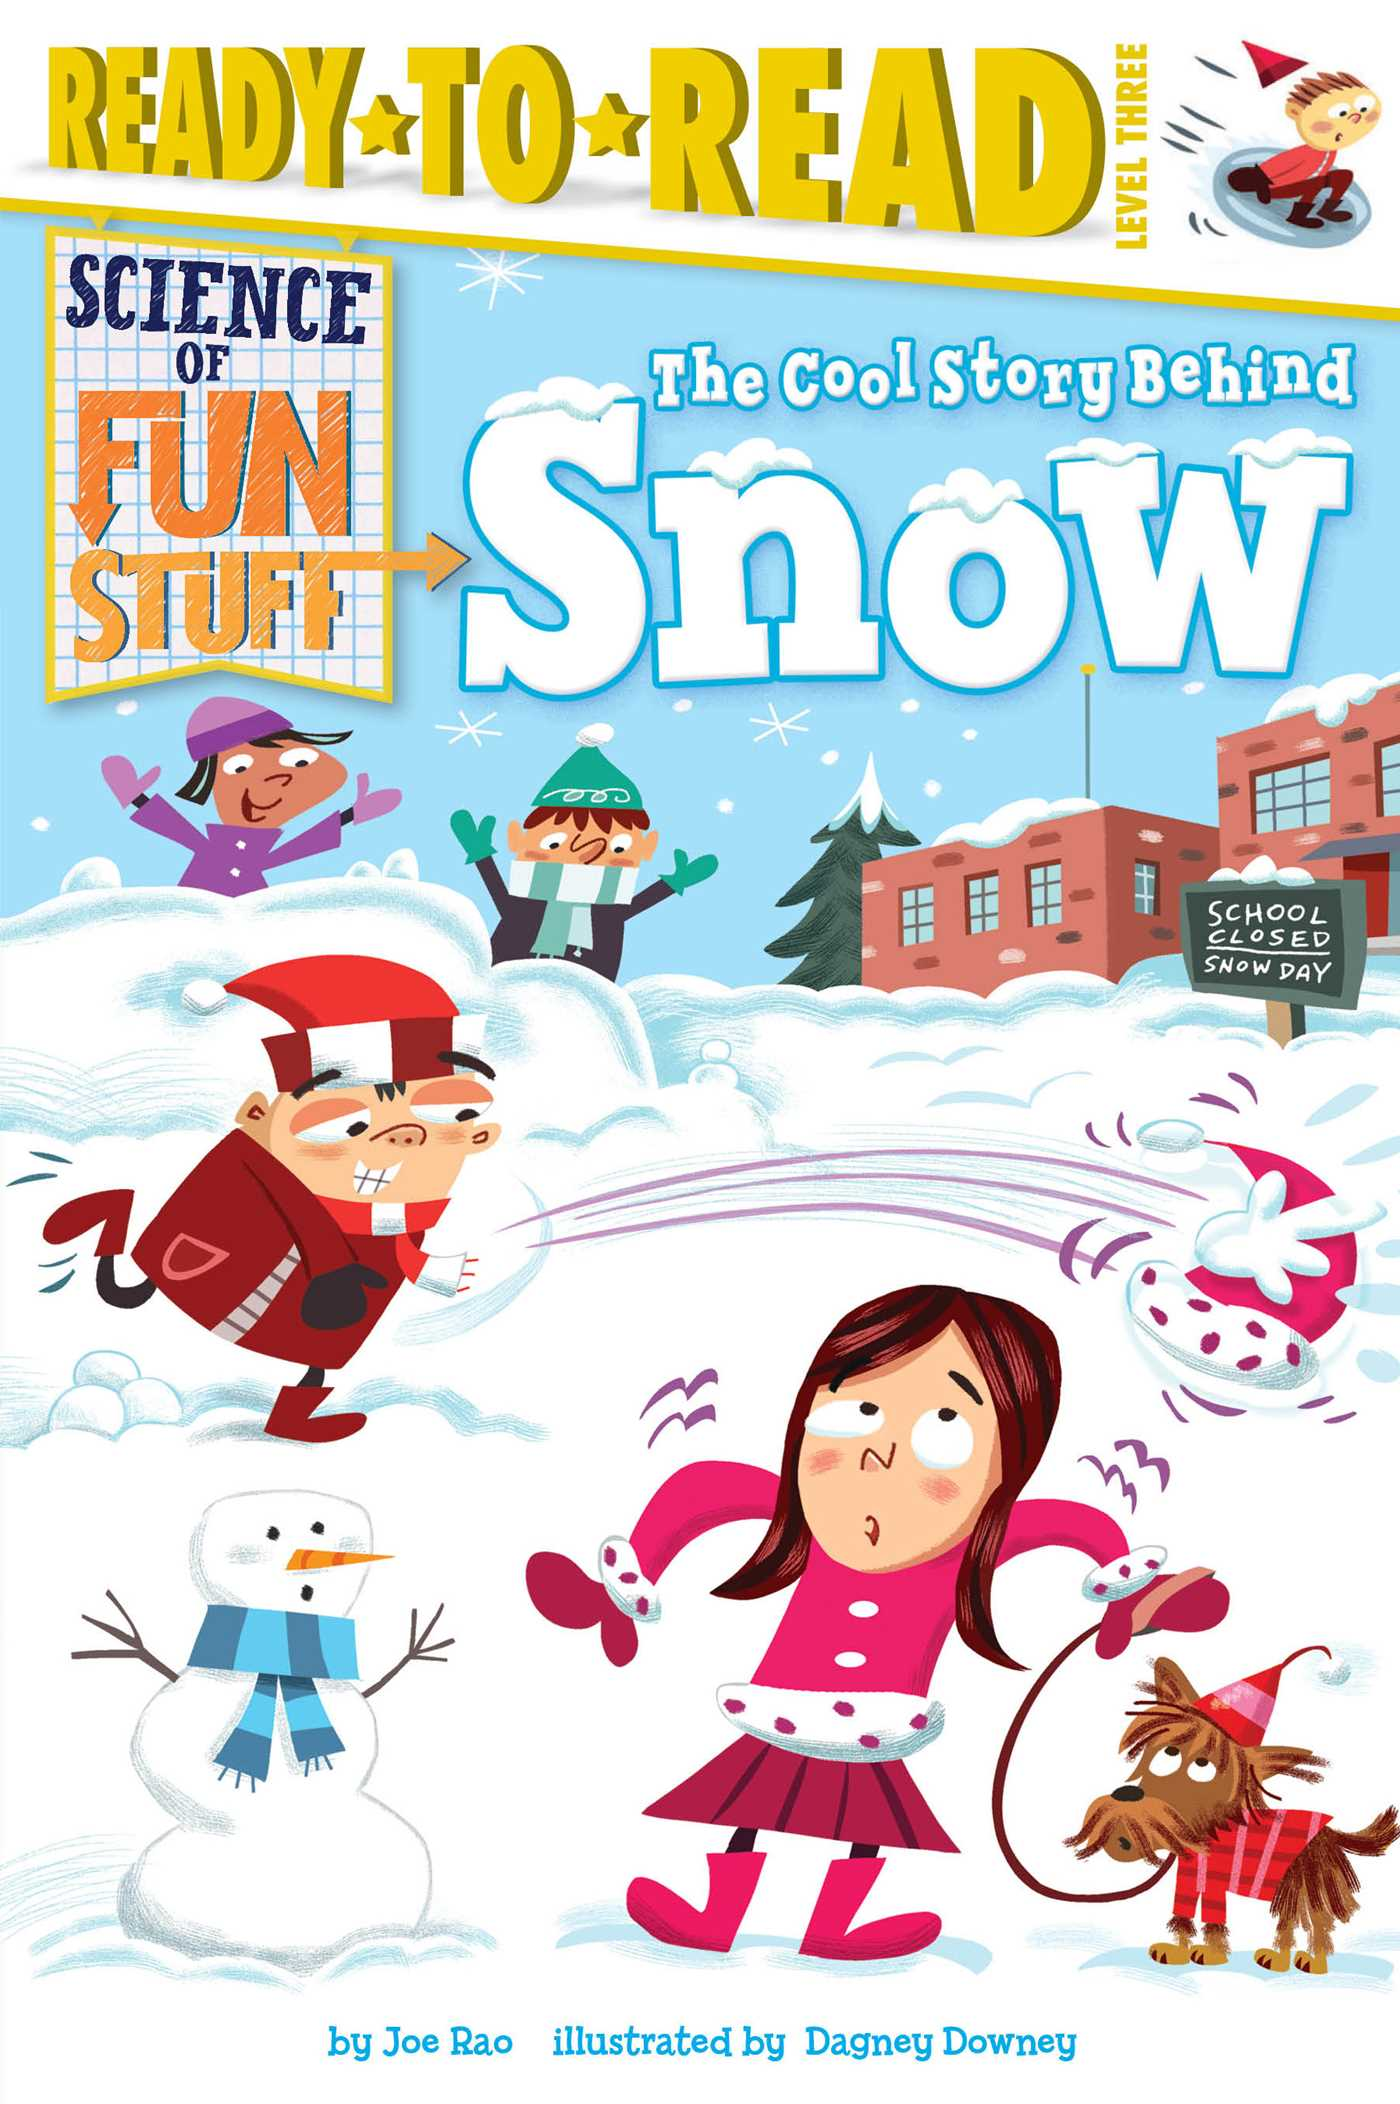 Cool Book Cover Uk : The cool story behind snow ebook by joe rao dagney downey